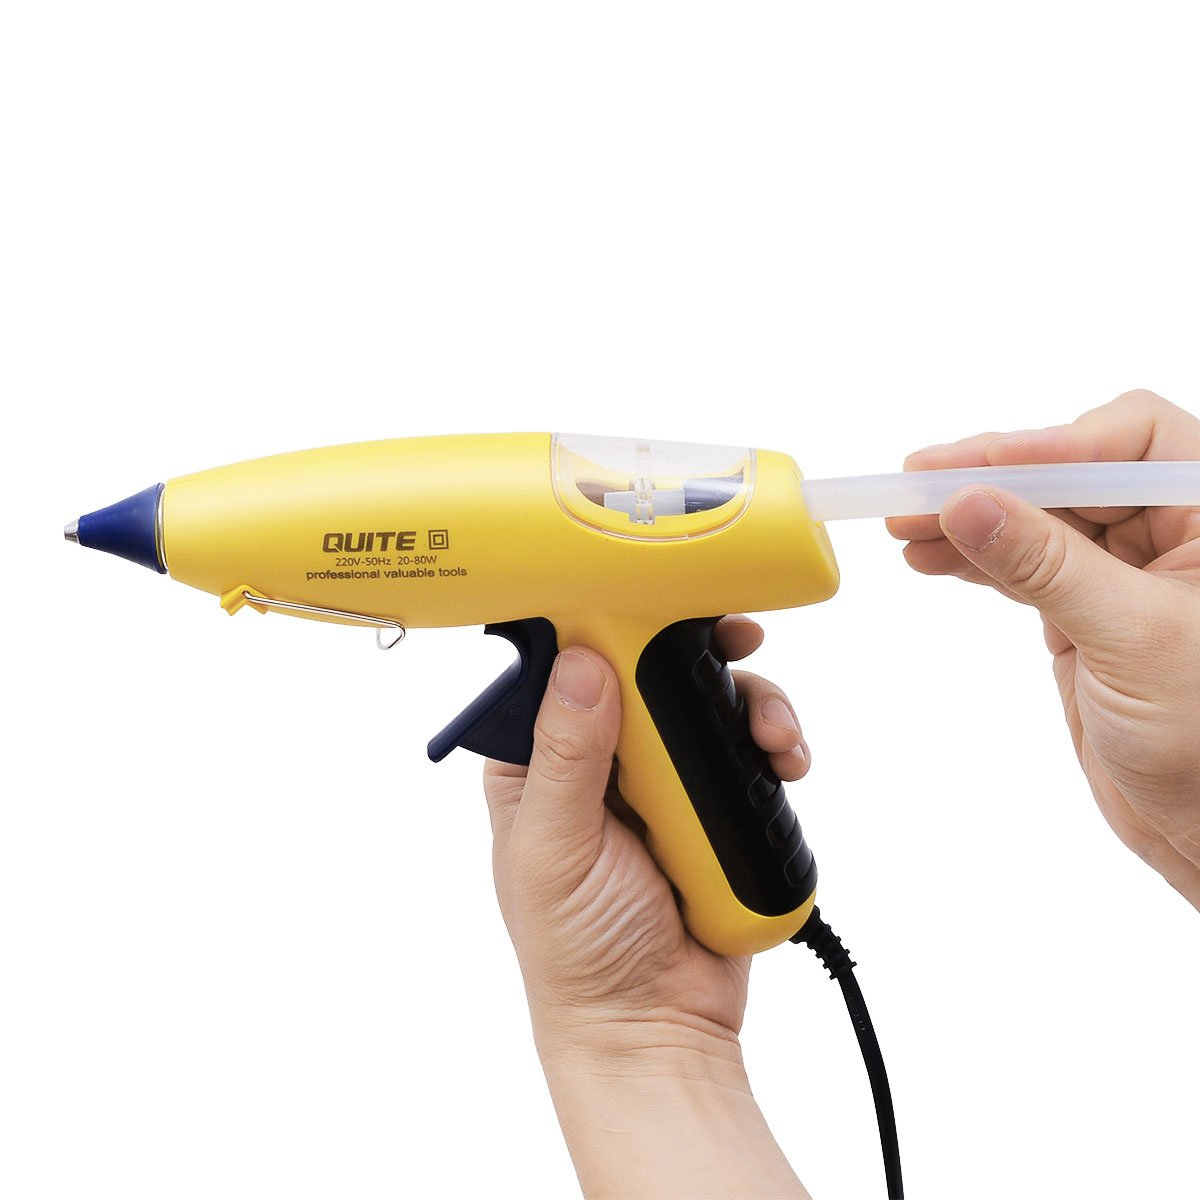 Robao 20-80W Mini Hot Melt Glue Gun with 12pcs Glue Sticks High Temperature Melting Glue Gun Kit Flexible Trigger for DIY Small Craft Projects&Sealing and Quick Repairs